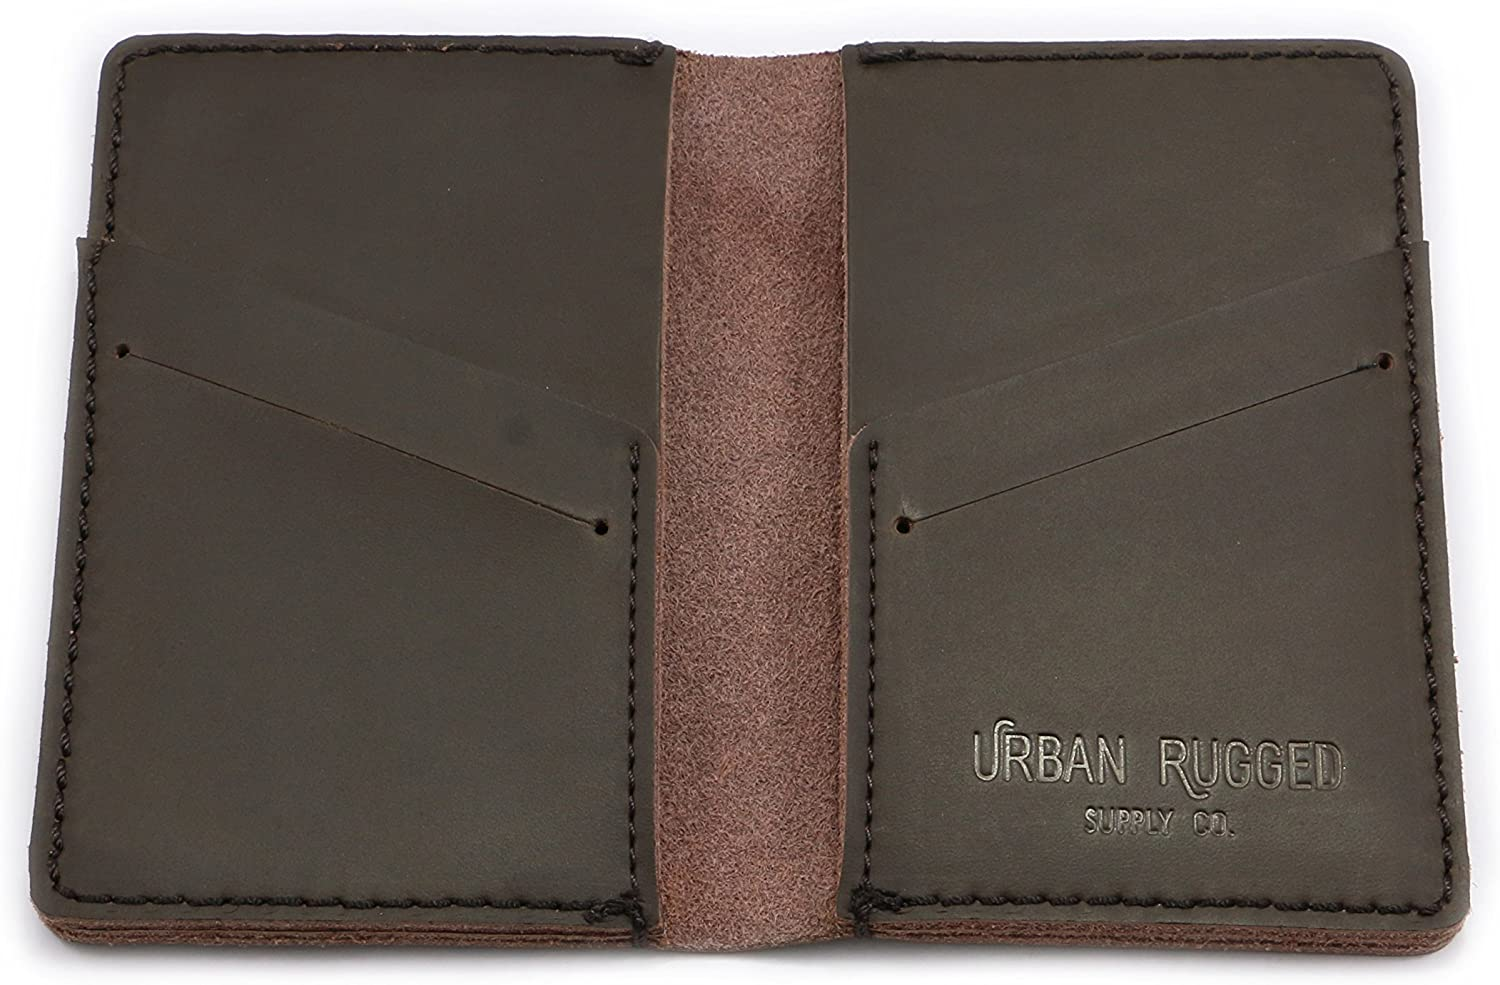 Limited Edition Genuine Leather Wallet - Minimalist Card Holder - Stylish Gift for Men